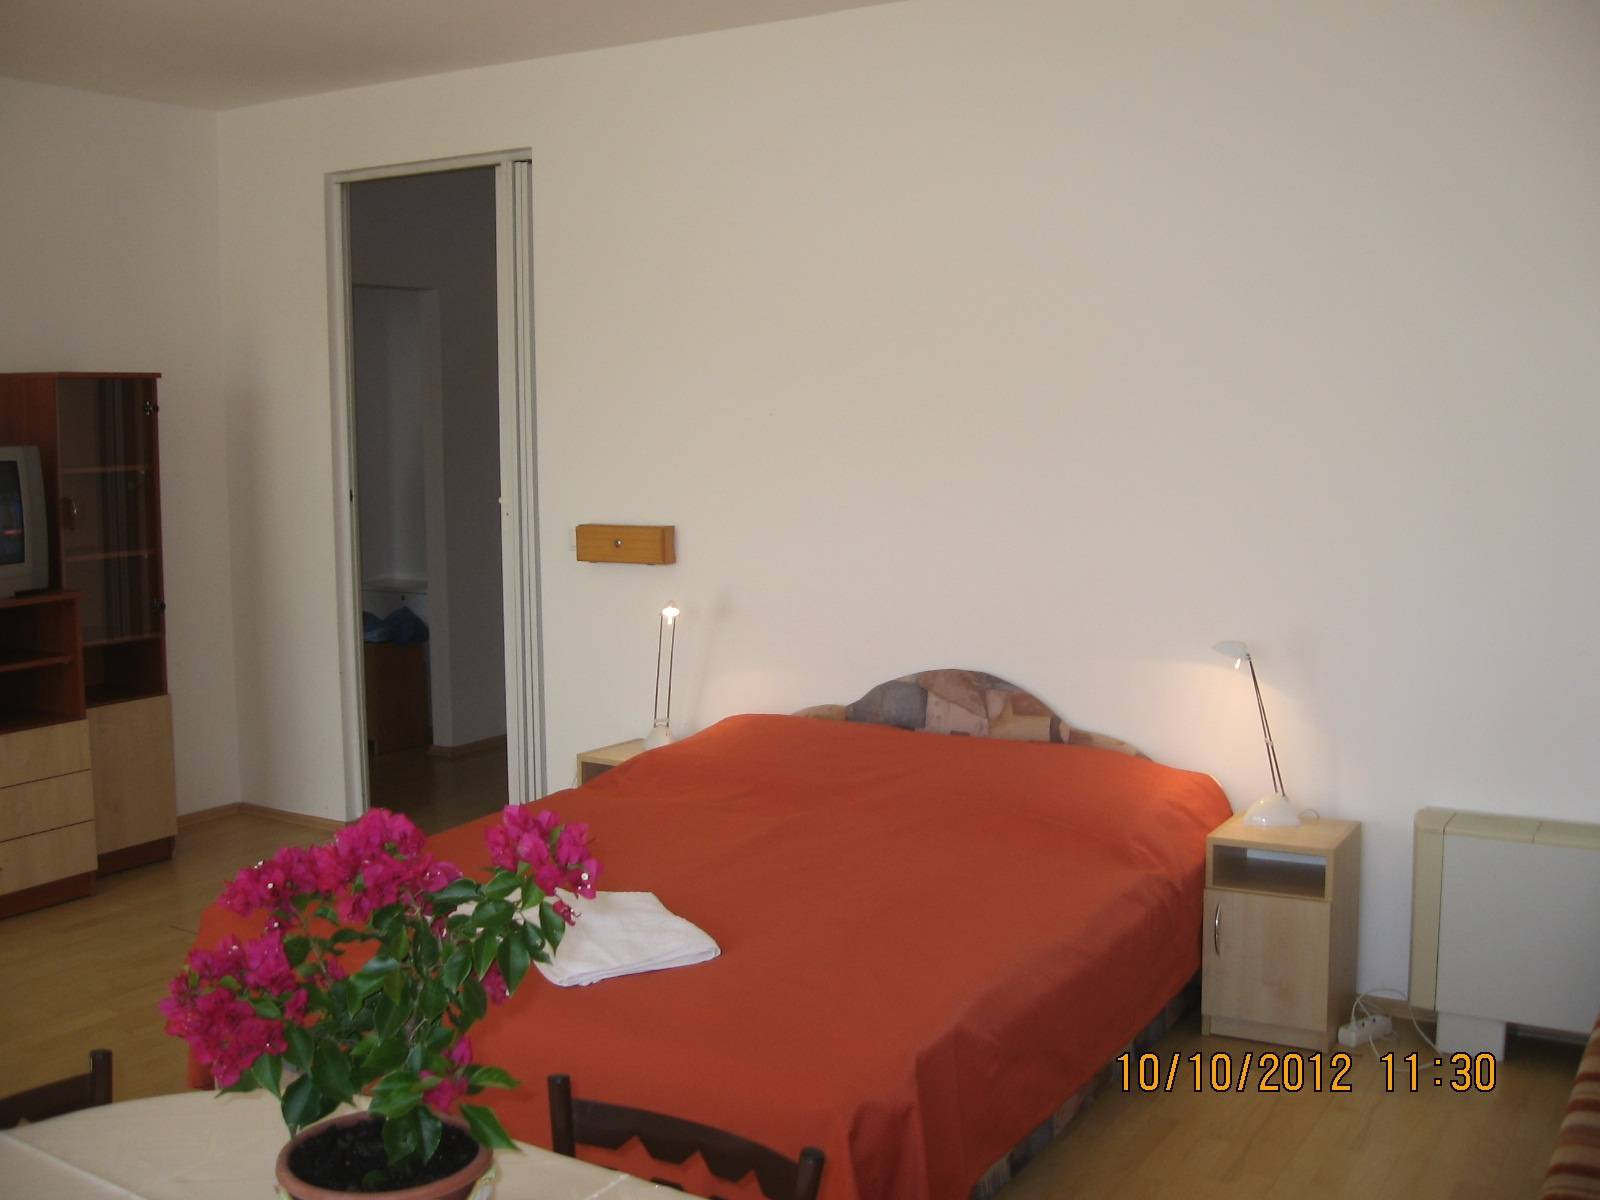 Gambrinusz Apartman Hajdszoboszl - Nappali szoba 2.